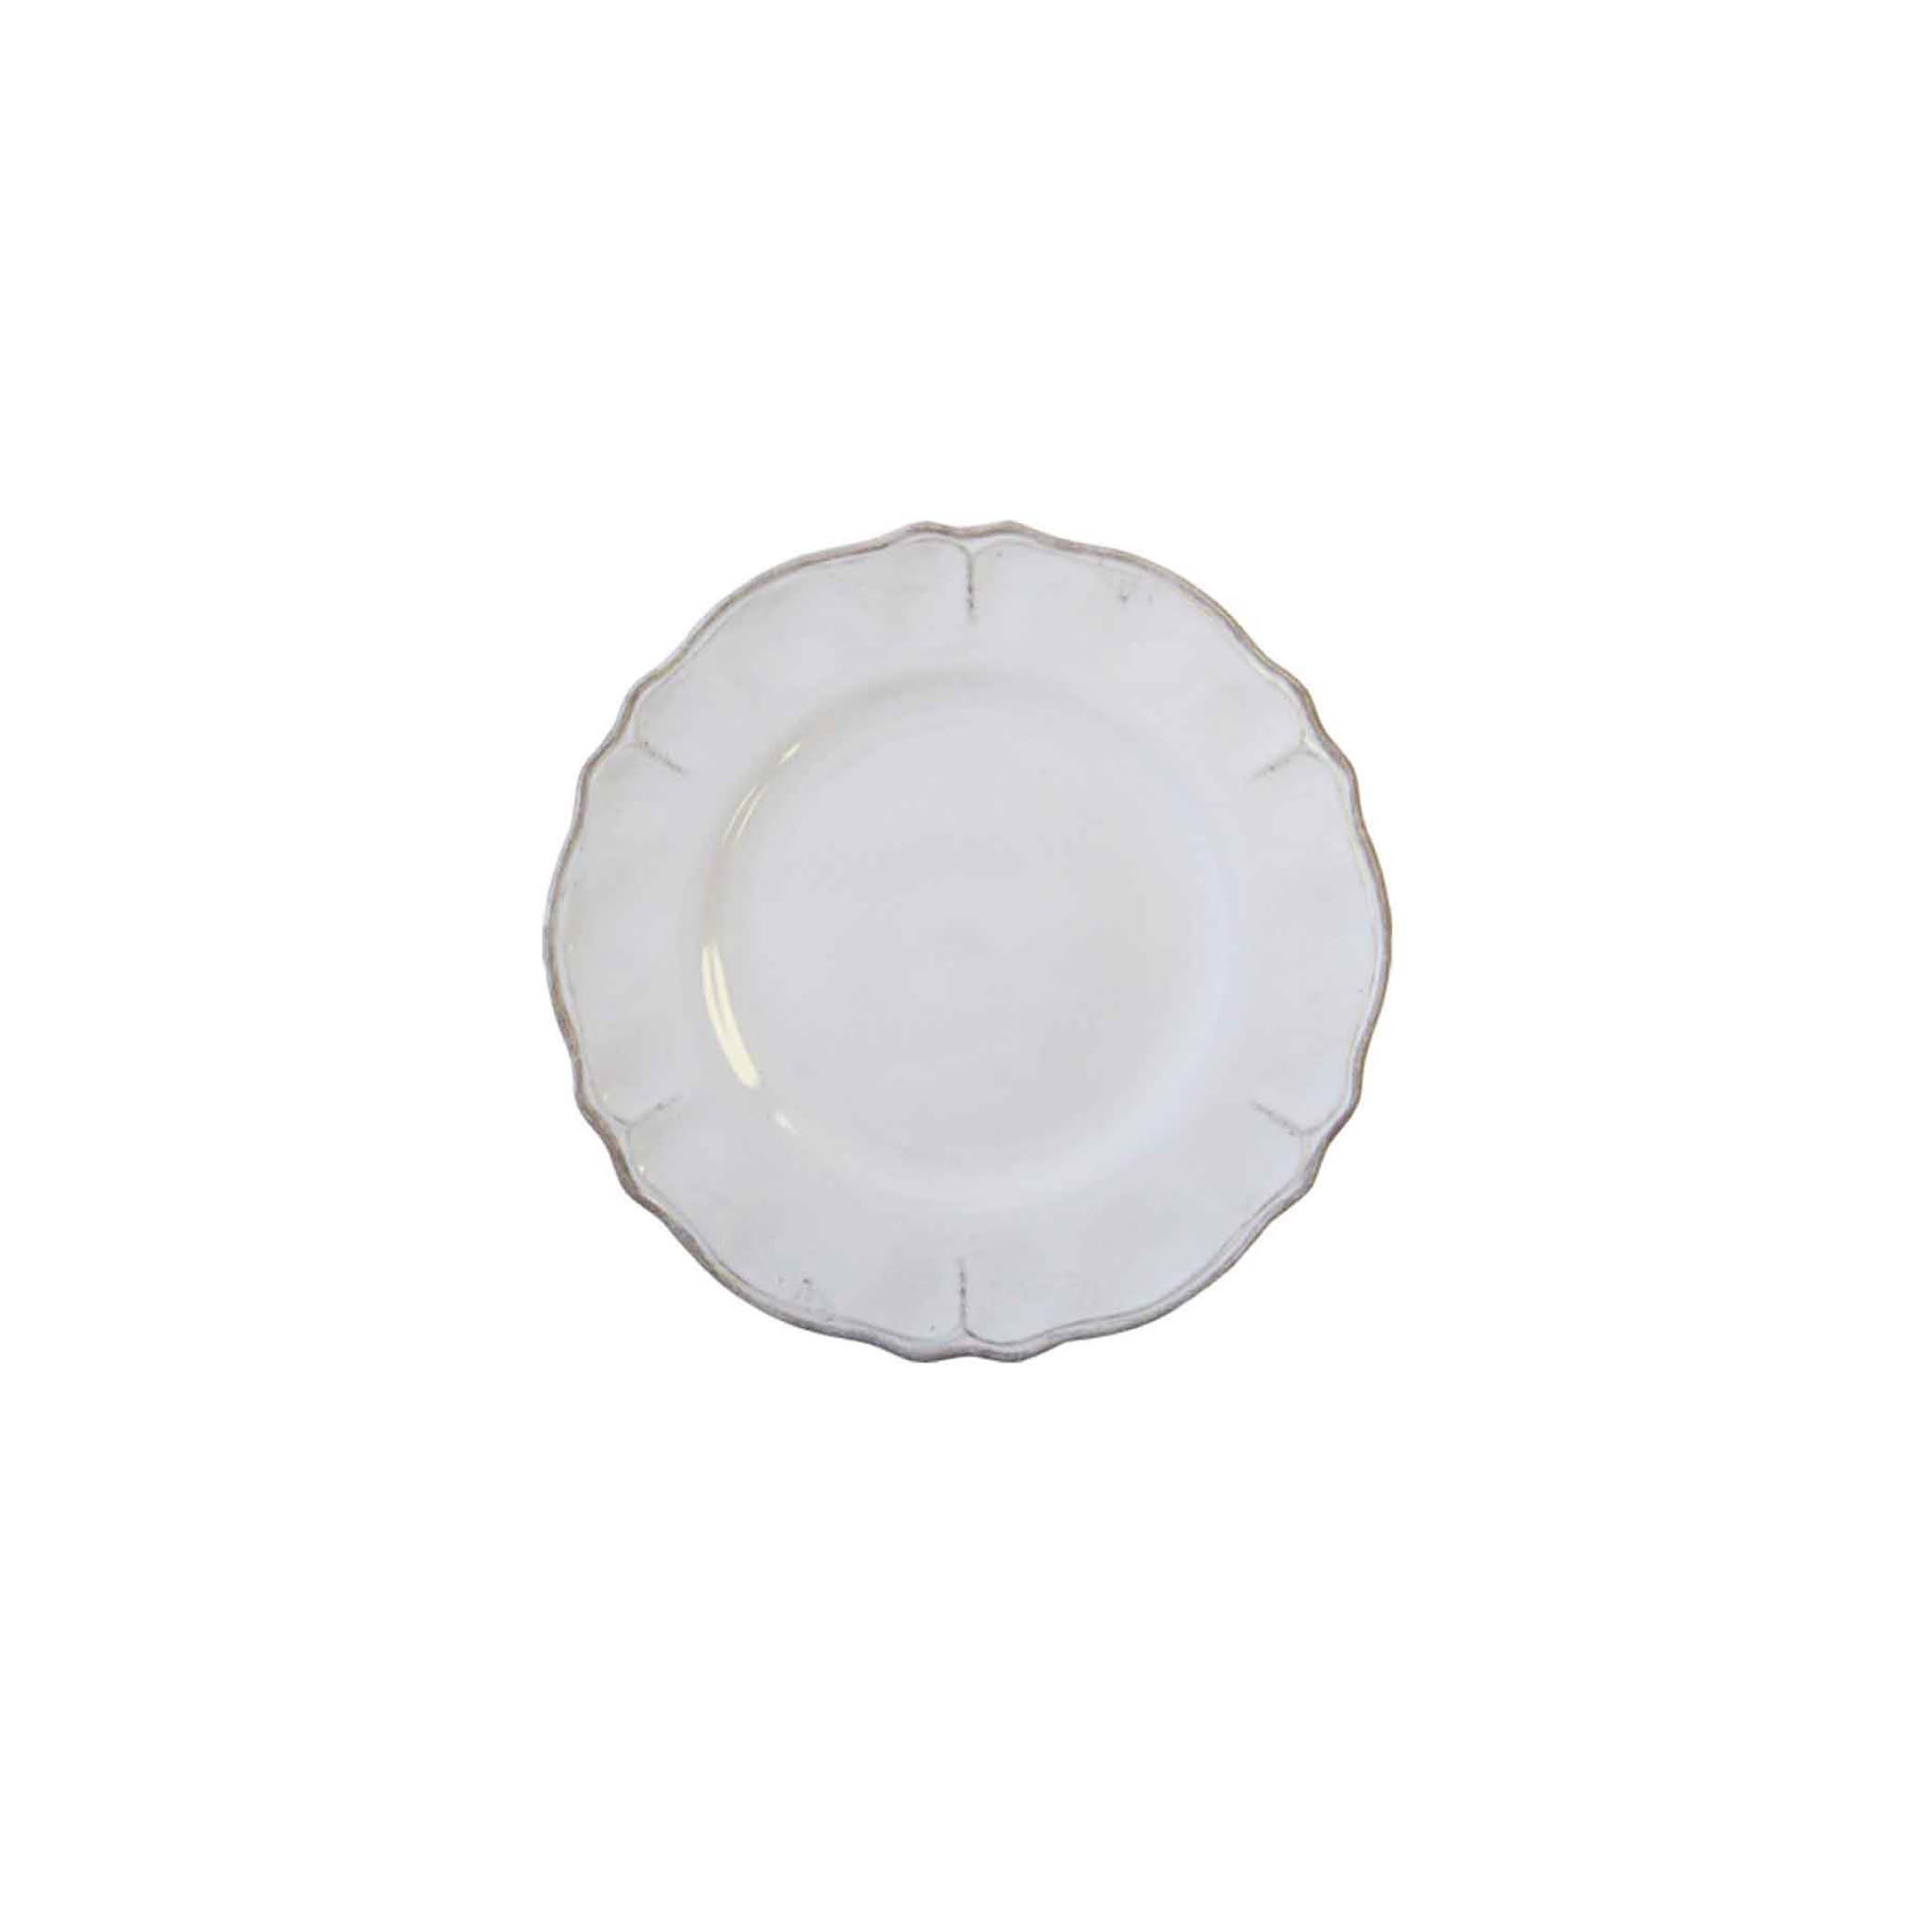 Rustica White Salad Plate $11.75   Wants 8 Has 4 Needs 4